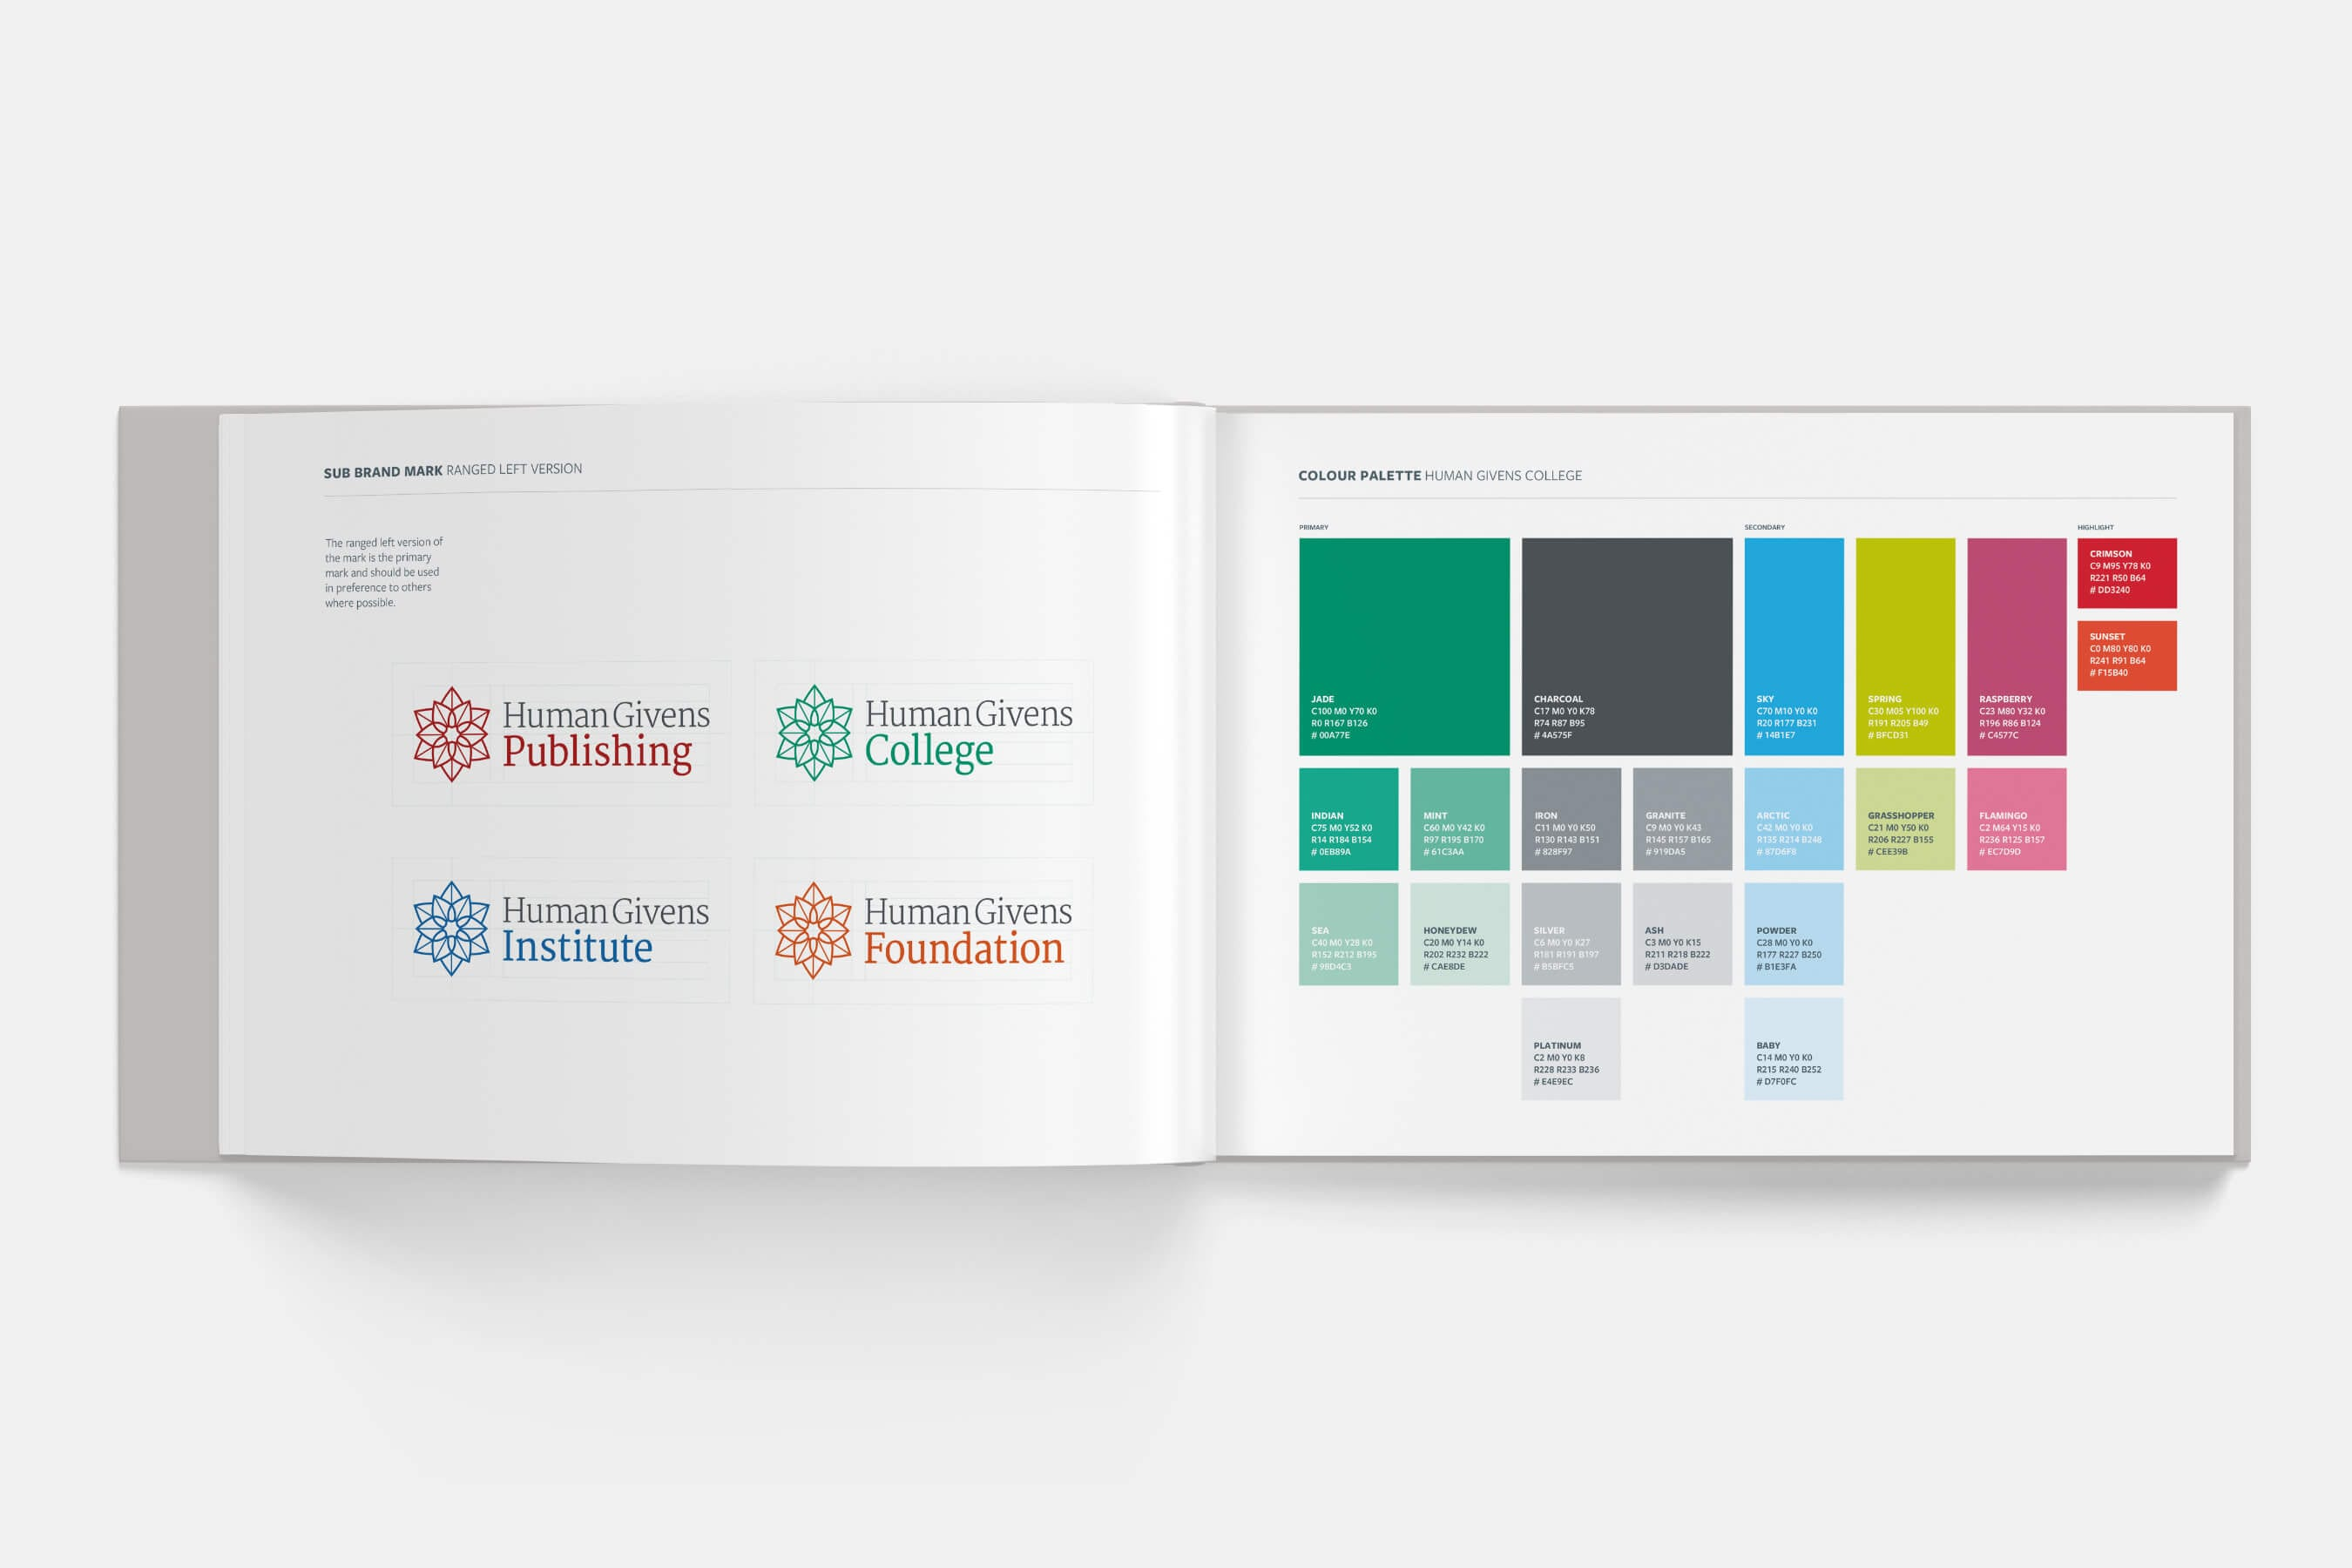 Human Givens brand guidelines